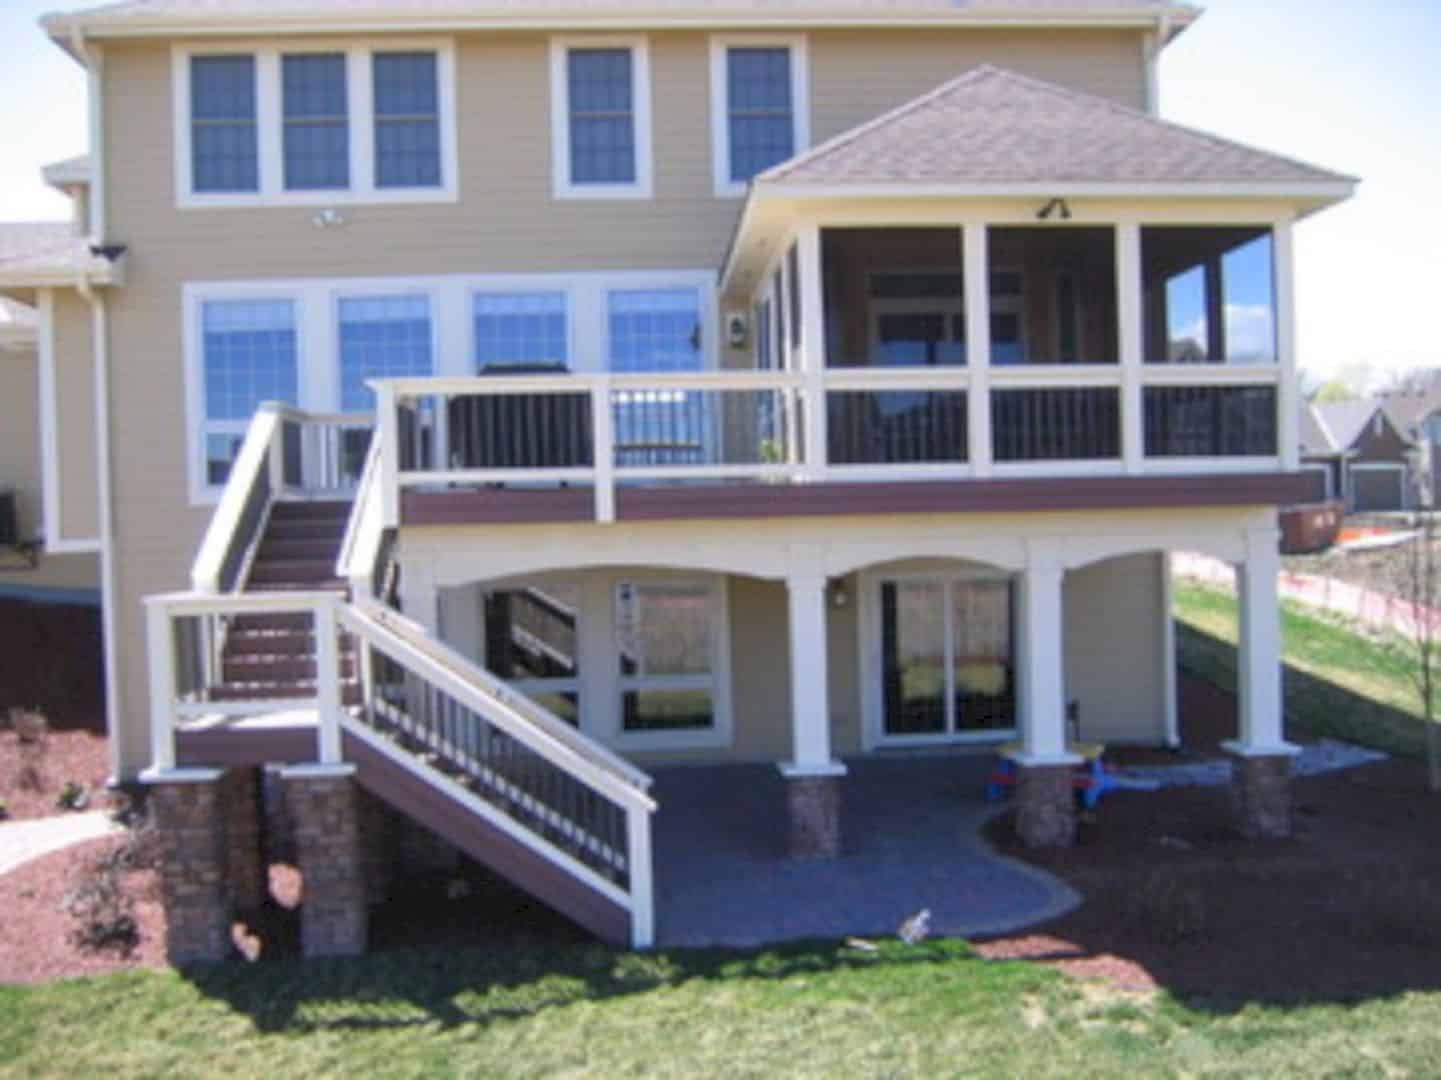 8 Ways To Have More Appealing Screened Porch Deck Futurist Architecture Decks And Porches Deck Designs Backyard Building A Deck